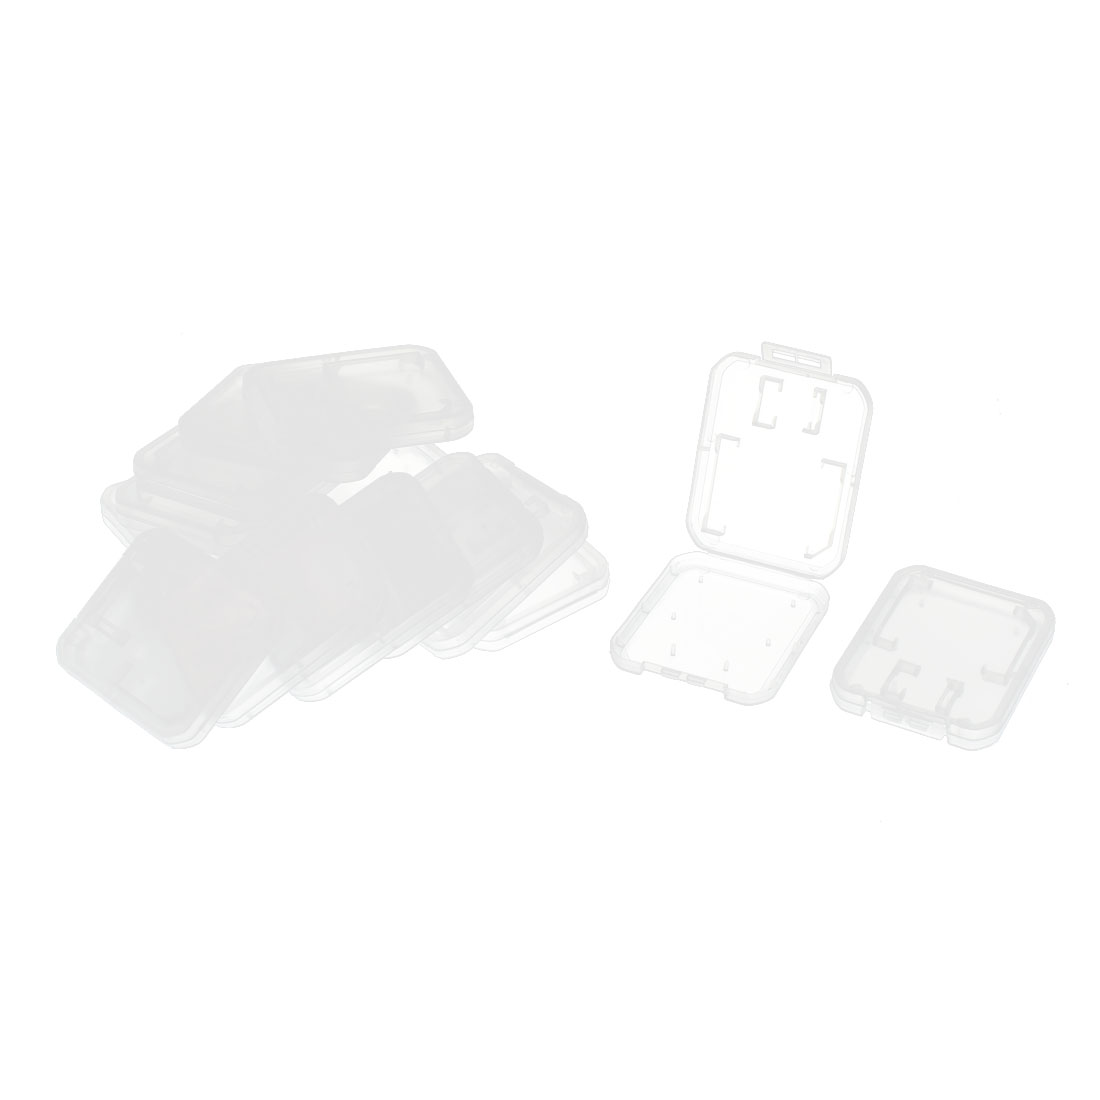 15Pcs Clear SD MS Micro TF Memory Card Storage Holder Box Case Protector